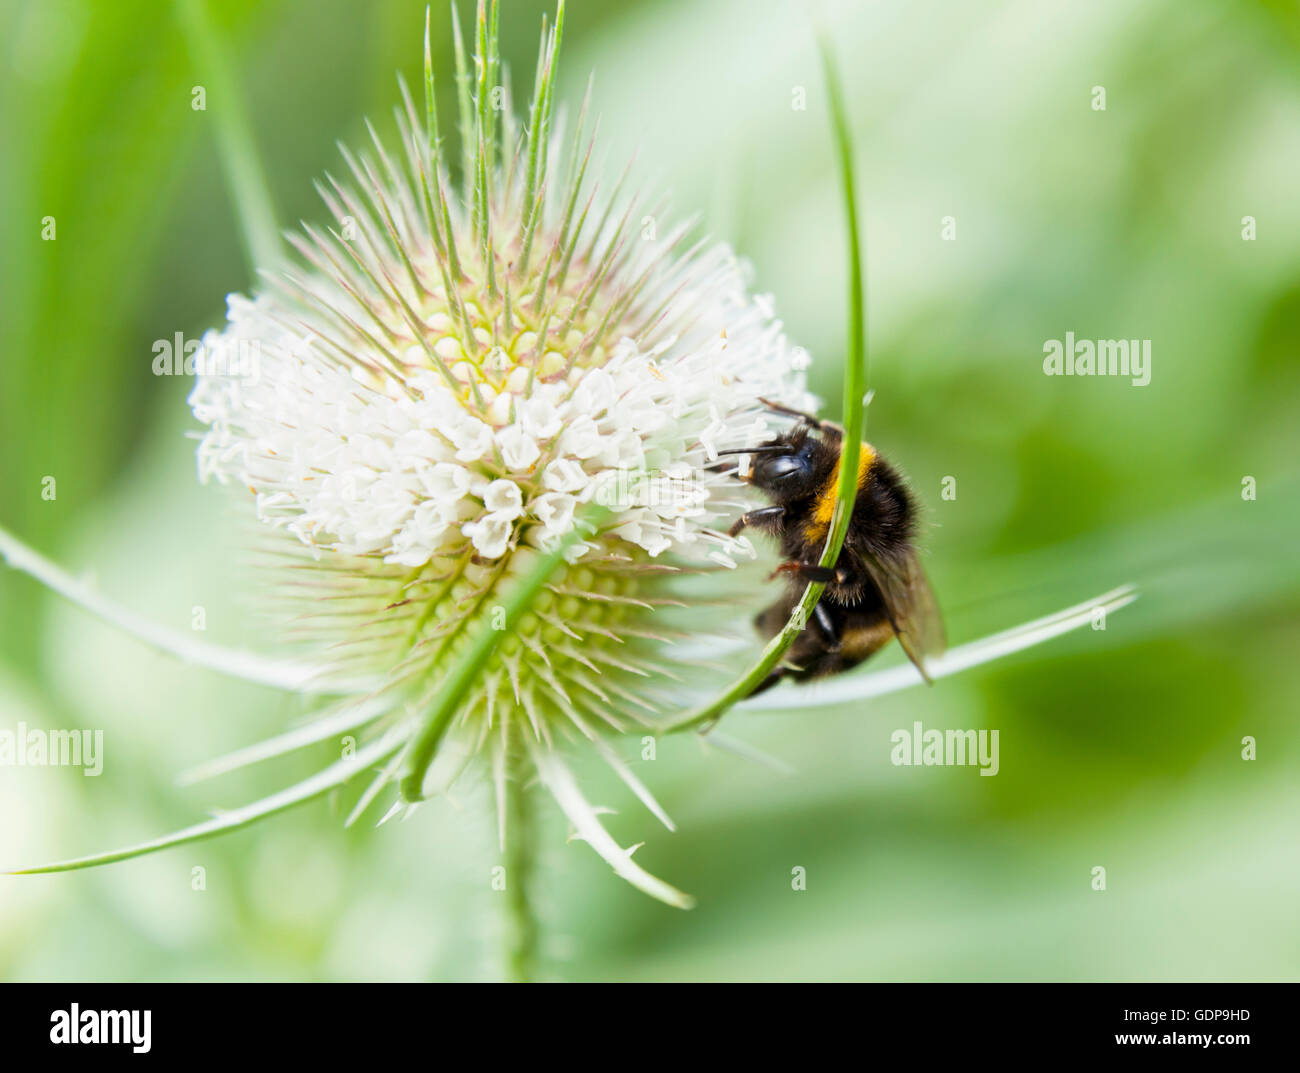 Close up of bumblebee feeding on wildflower nectar Stock Photo